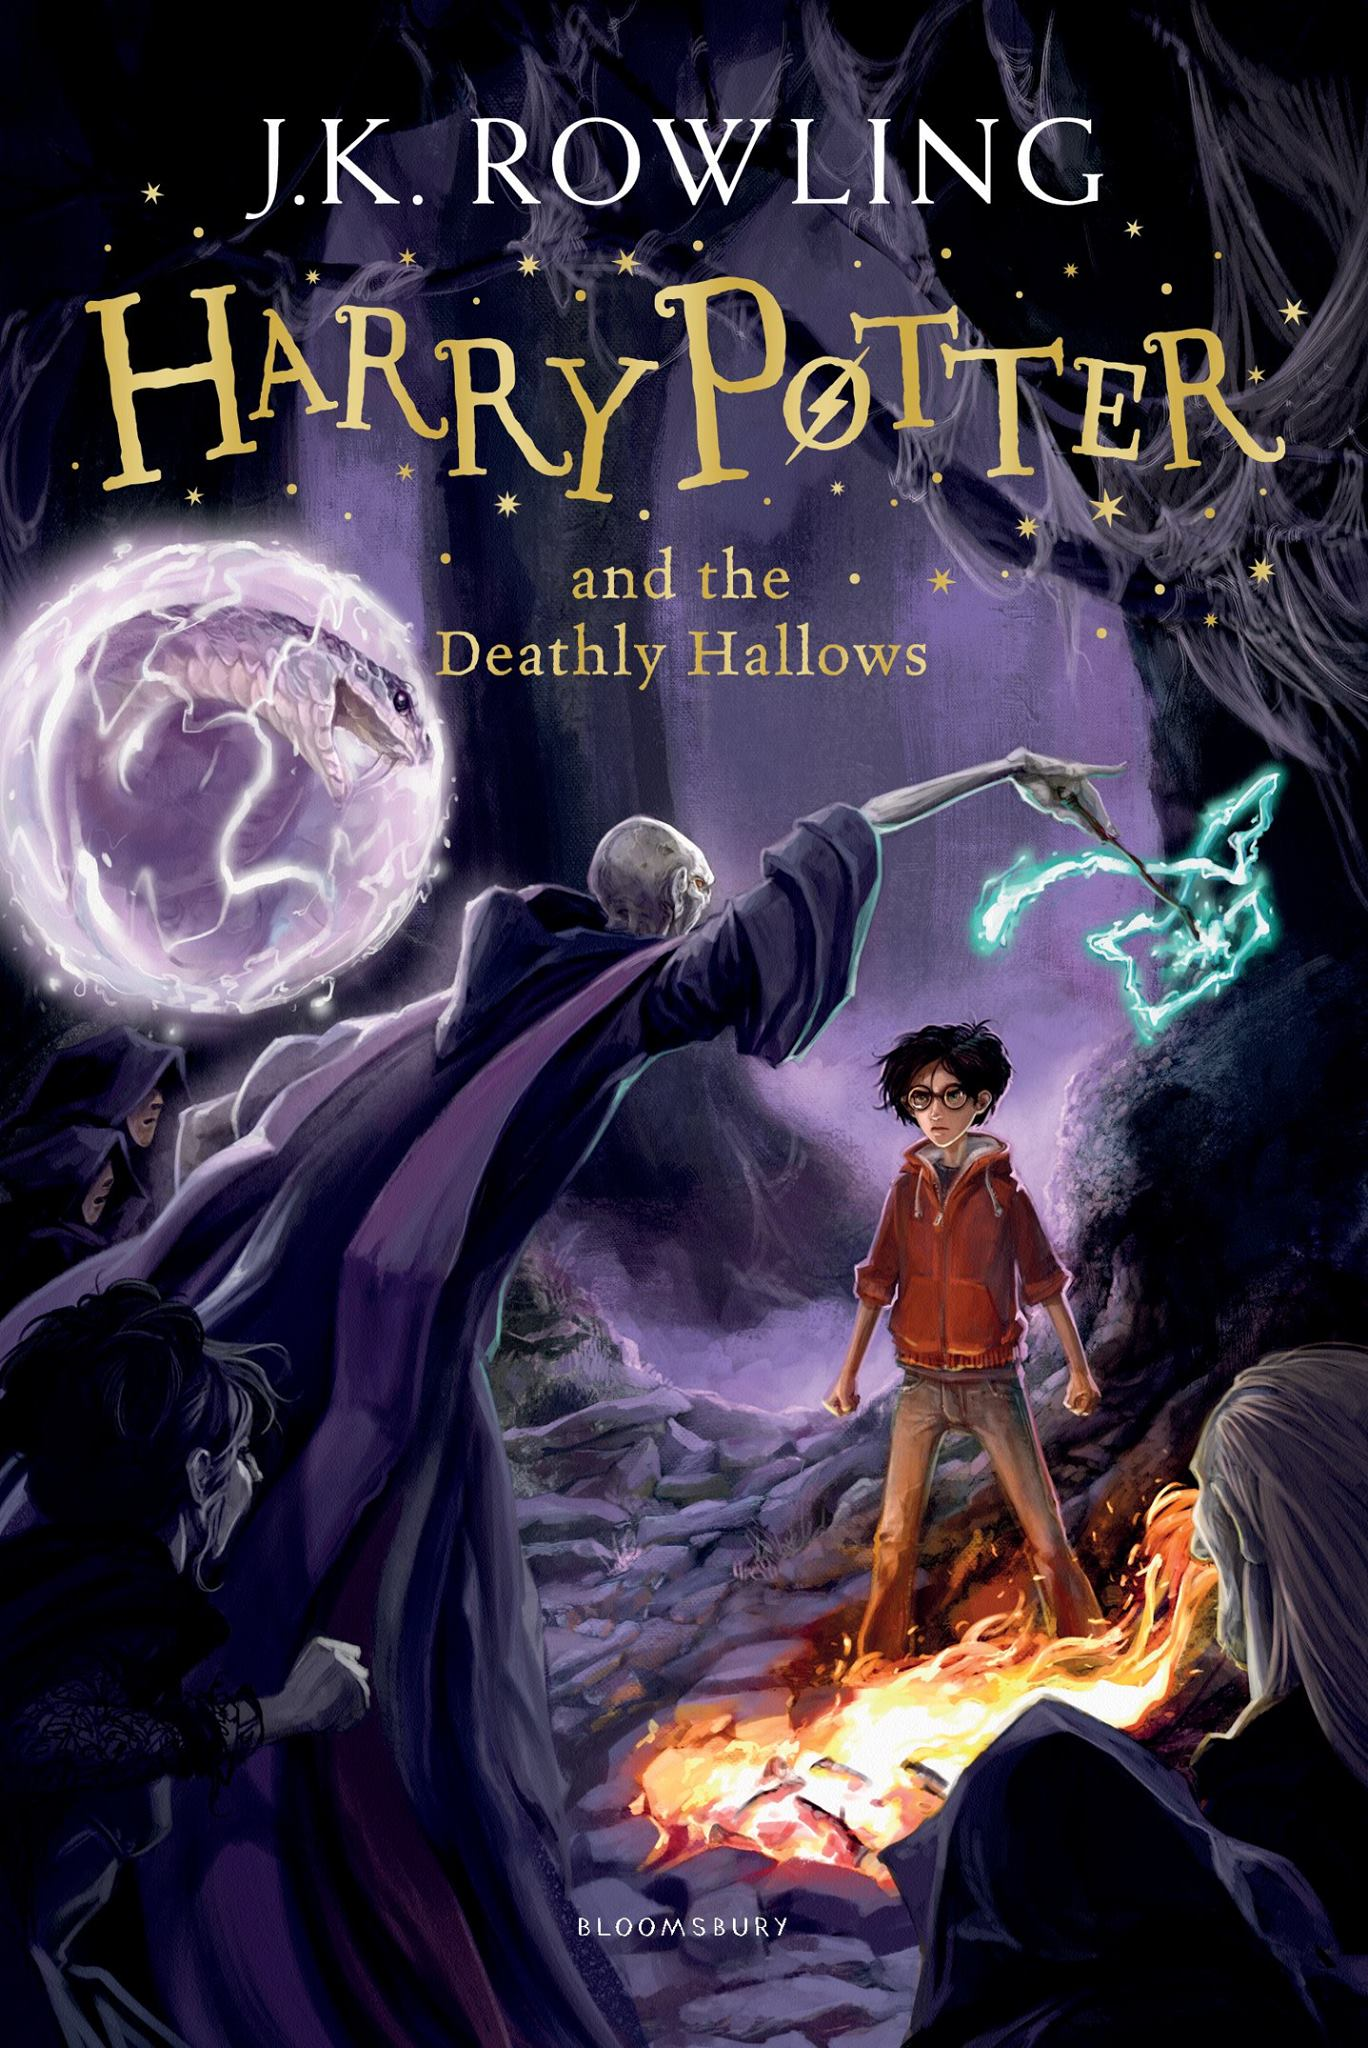 Harry Potter and the Deathly Hallows | Harry Potter Wiki | FANDOM